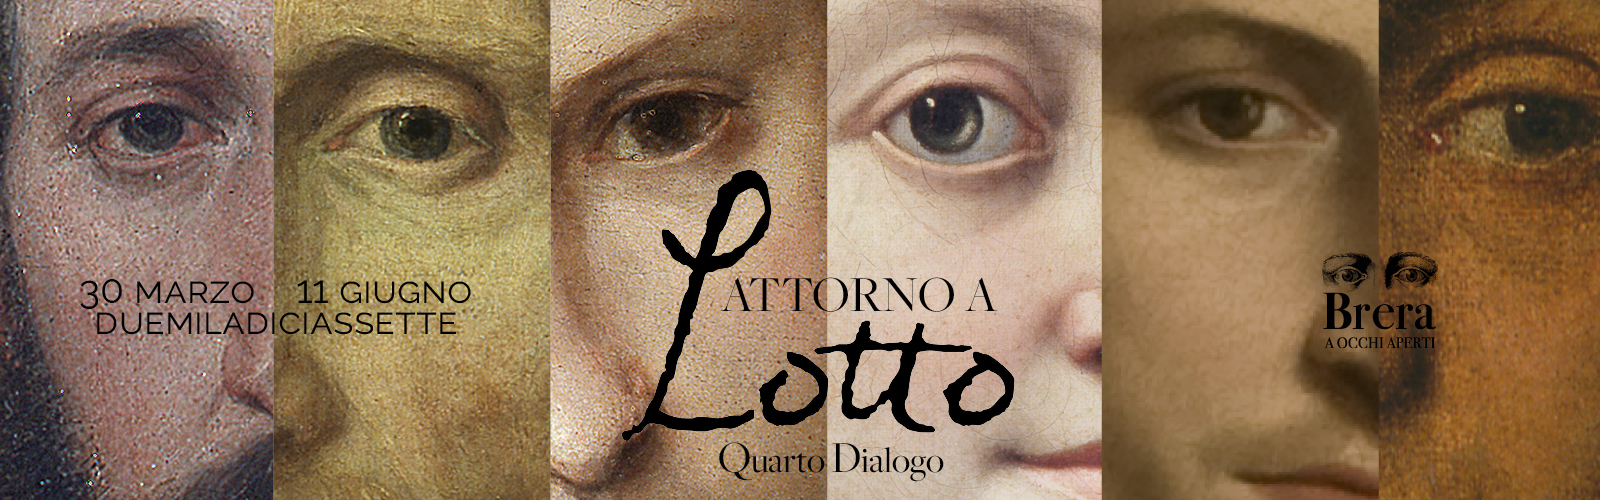 "Quarto dialogo ""Attorno a Lotto"" 